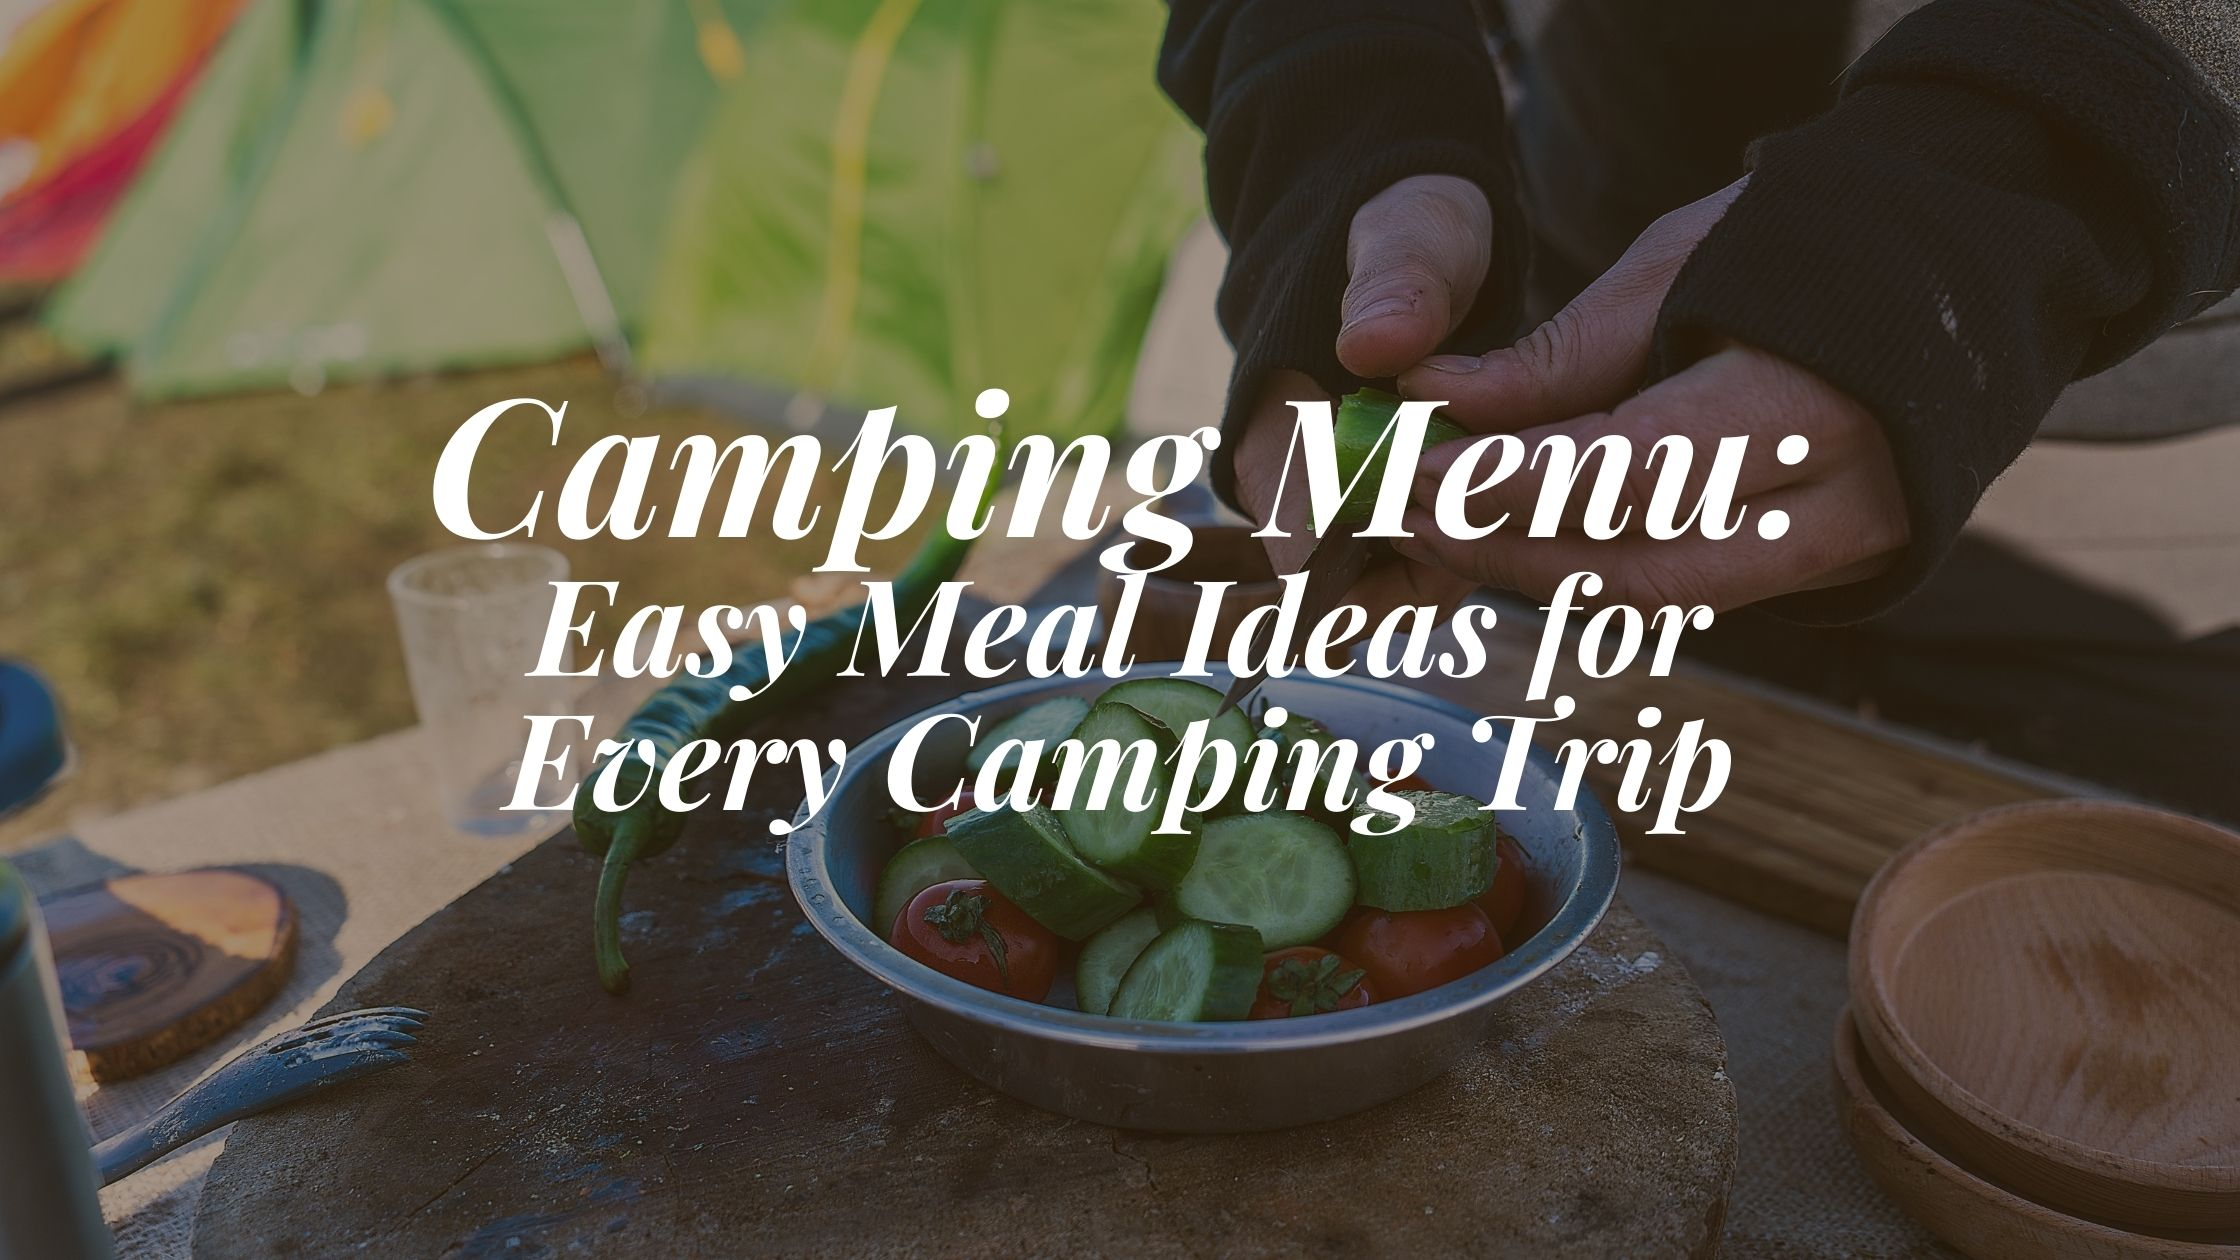 Camping Menu: Easy Meal Ideas for Every Camping Trip